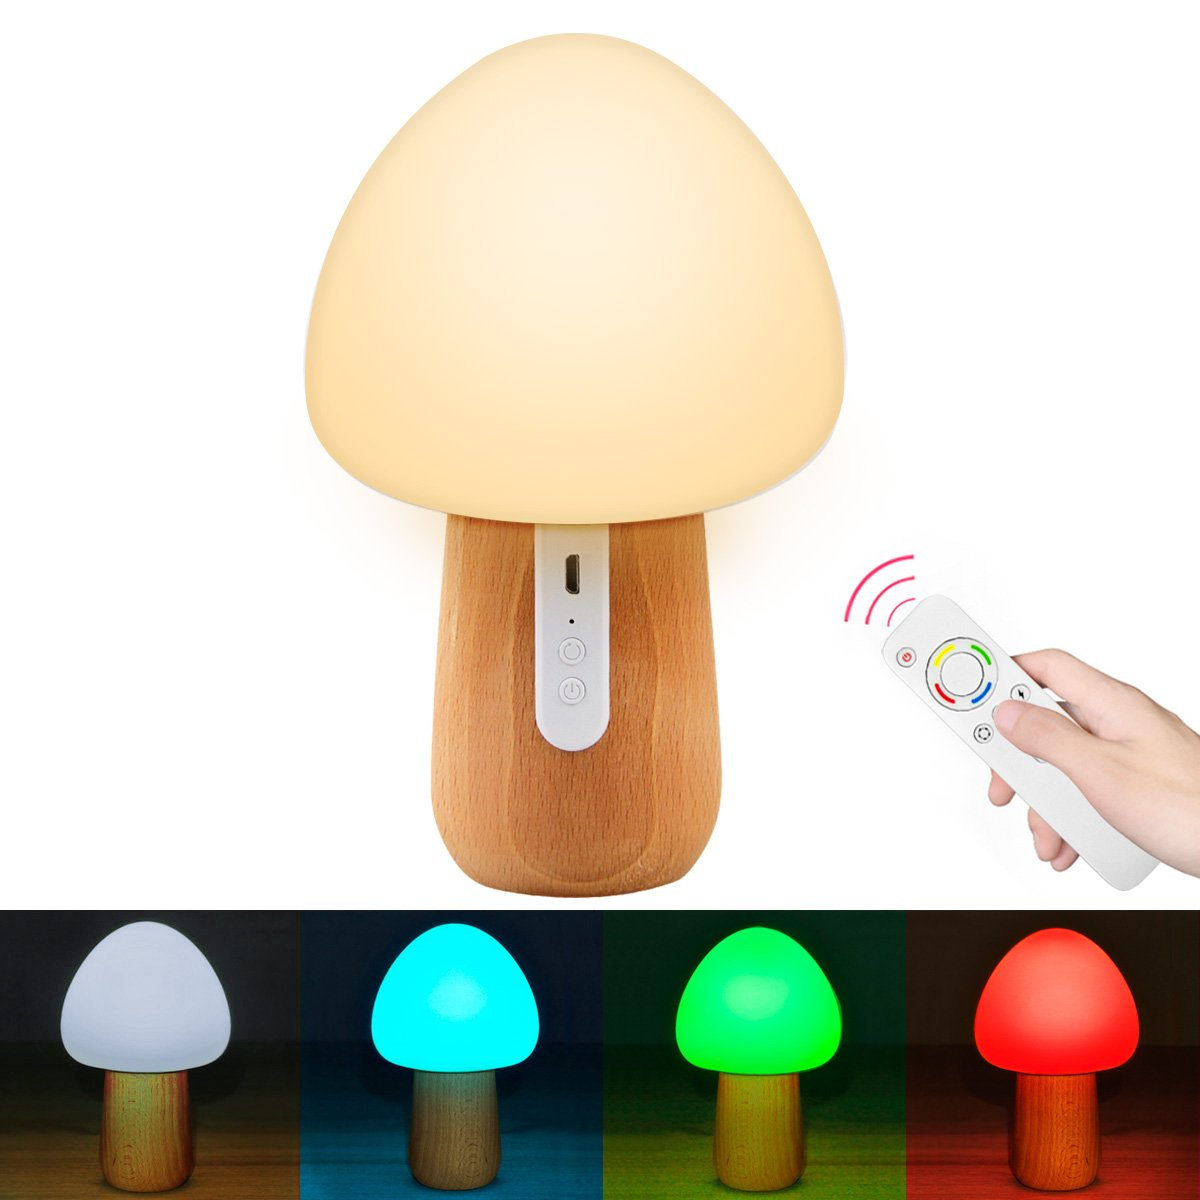 Remote Control Night Light, Mystery 100% Beech Wooden Eye-Caring LED Mushroom Nursery Lamp, Soft Silicone Relaxing Nightlight for Baby Kids Adults Bedroom (Brightness Adjustment & Colors Cycles)